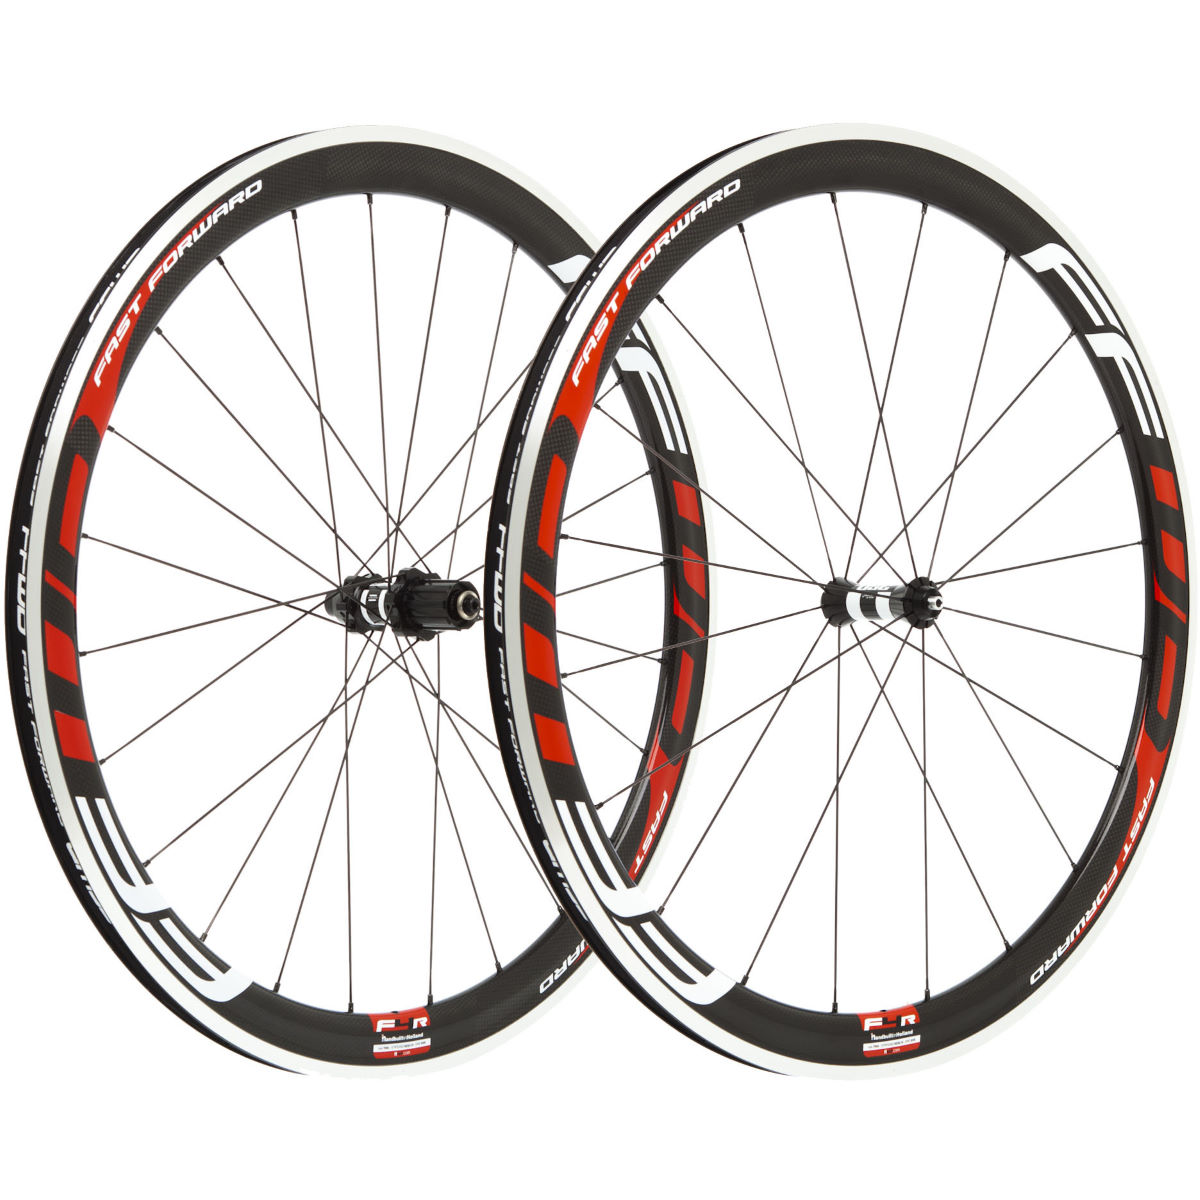 Fast Forward Carbon F4 Clincher 45mm SP Wheelset:White:700c:Shi - Juegos de ruedas